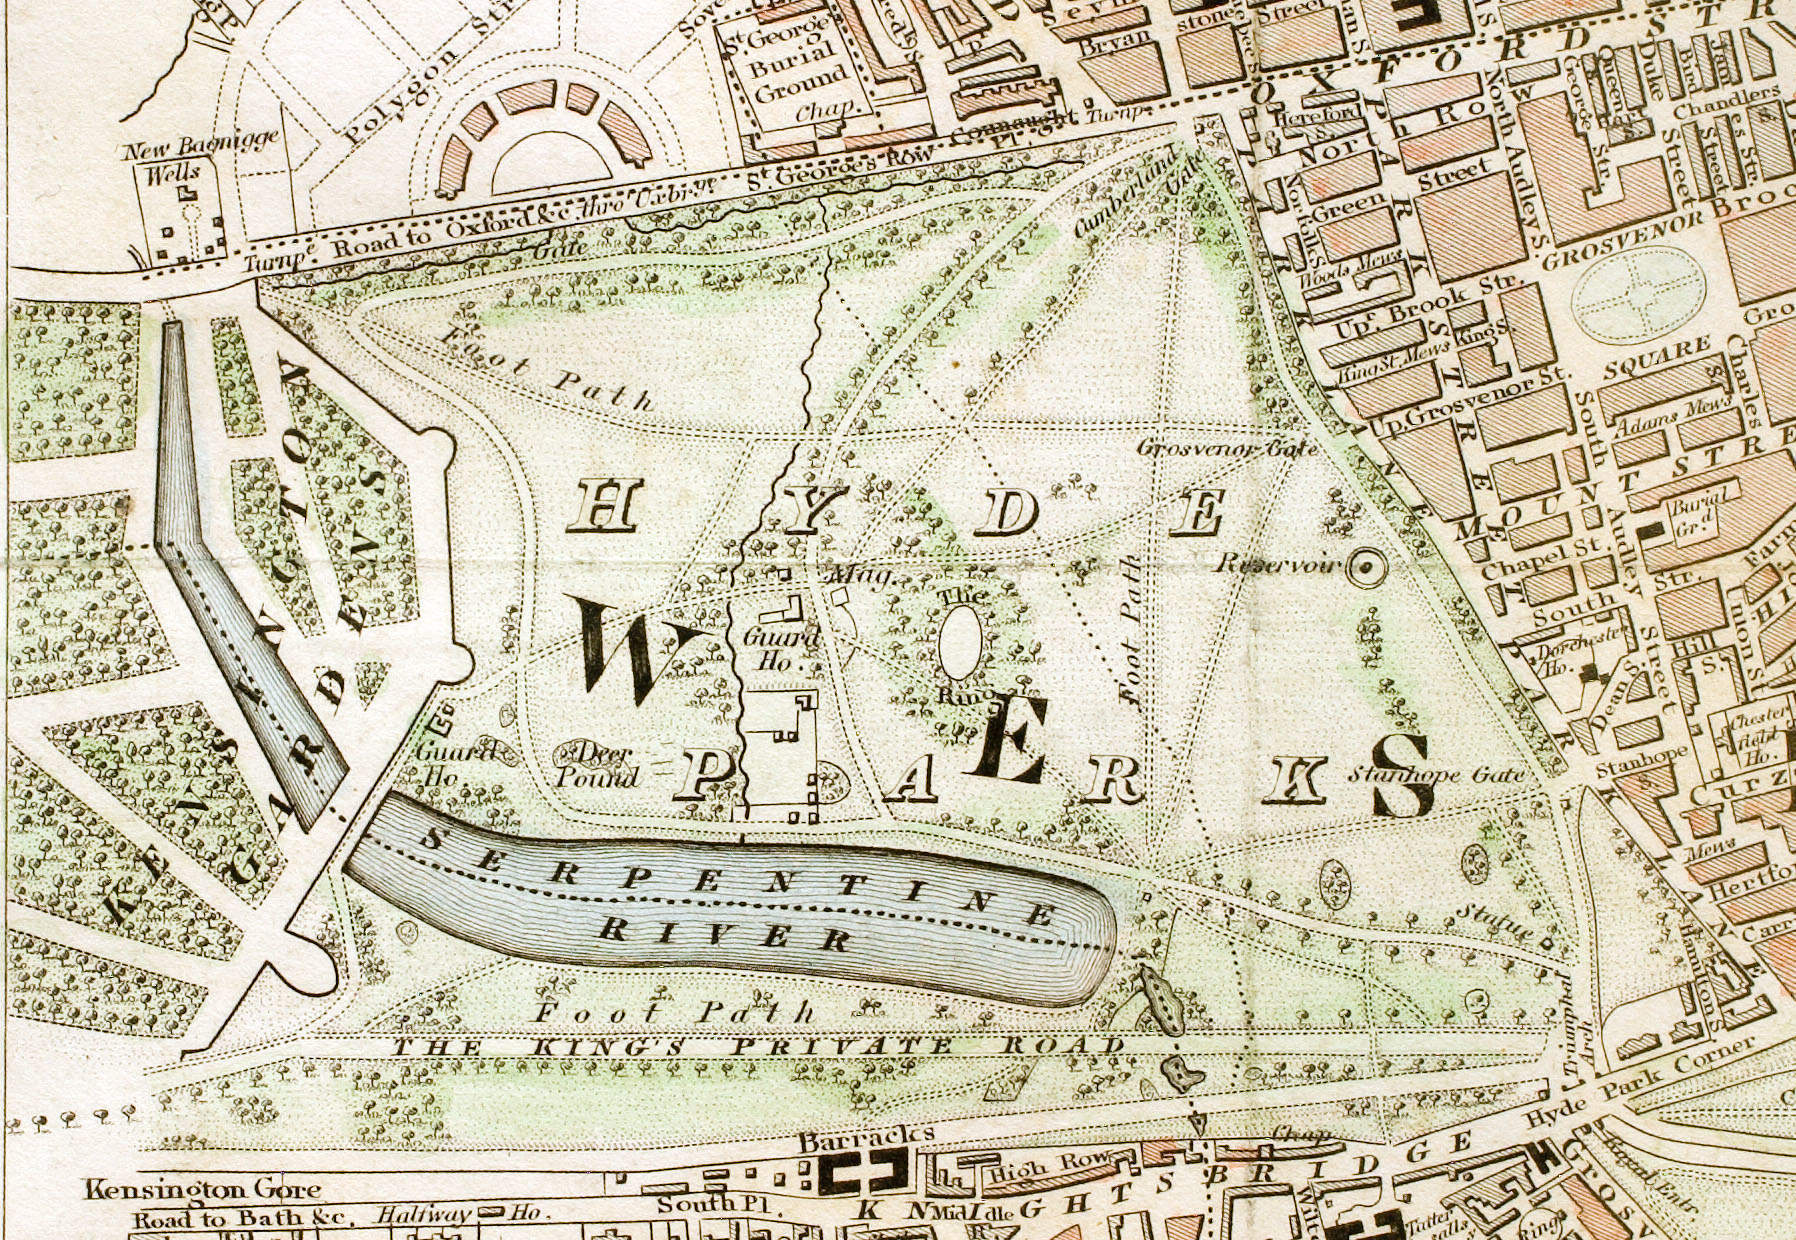 A hundred and fifty feet above Hyde Park is a scene of glory and bloodlust